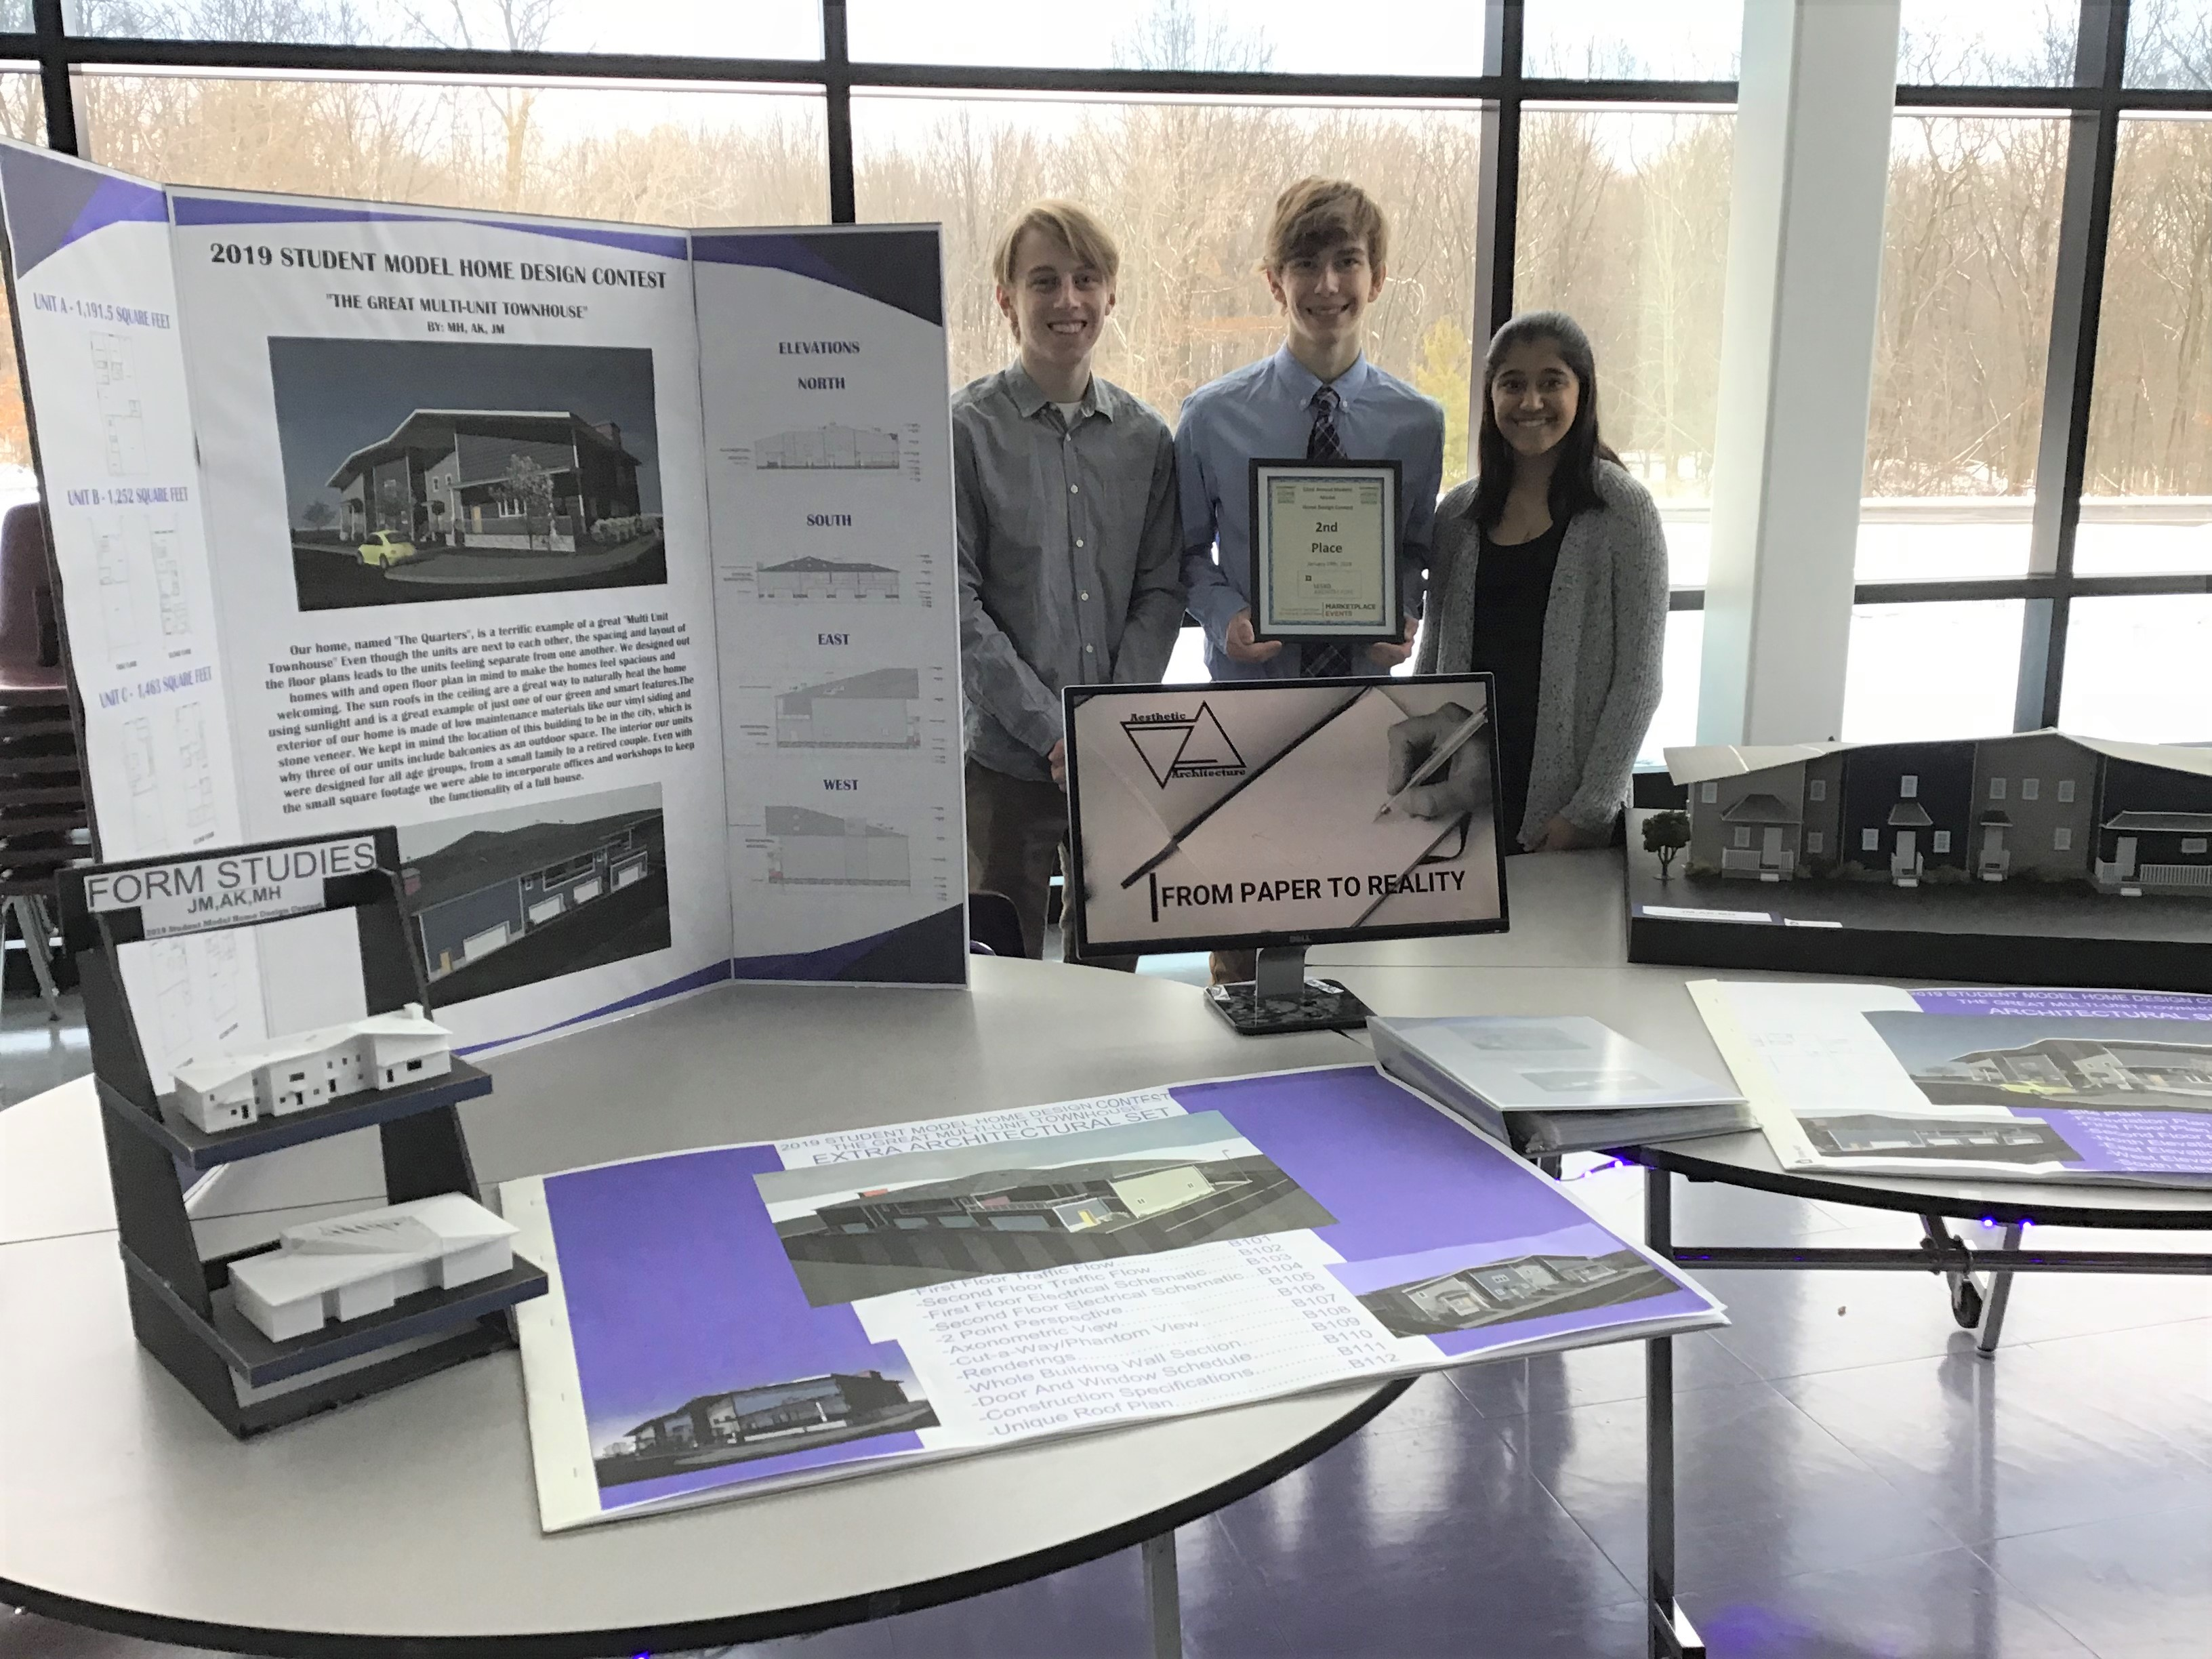 2019 Student Model Home Design Contest 2nd place team